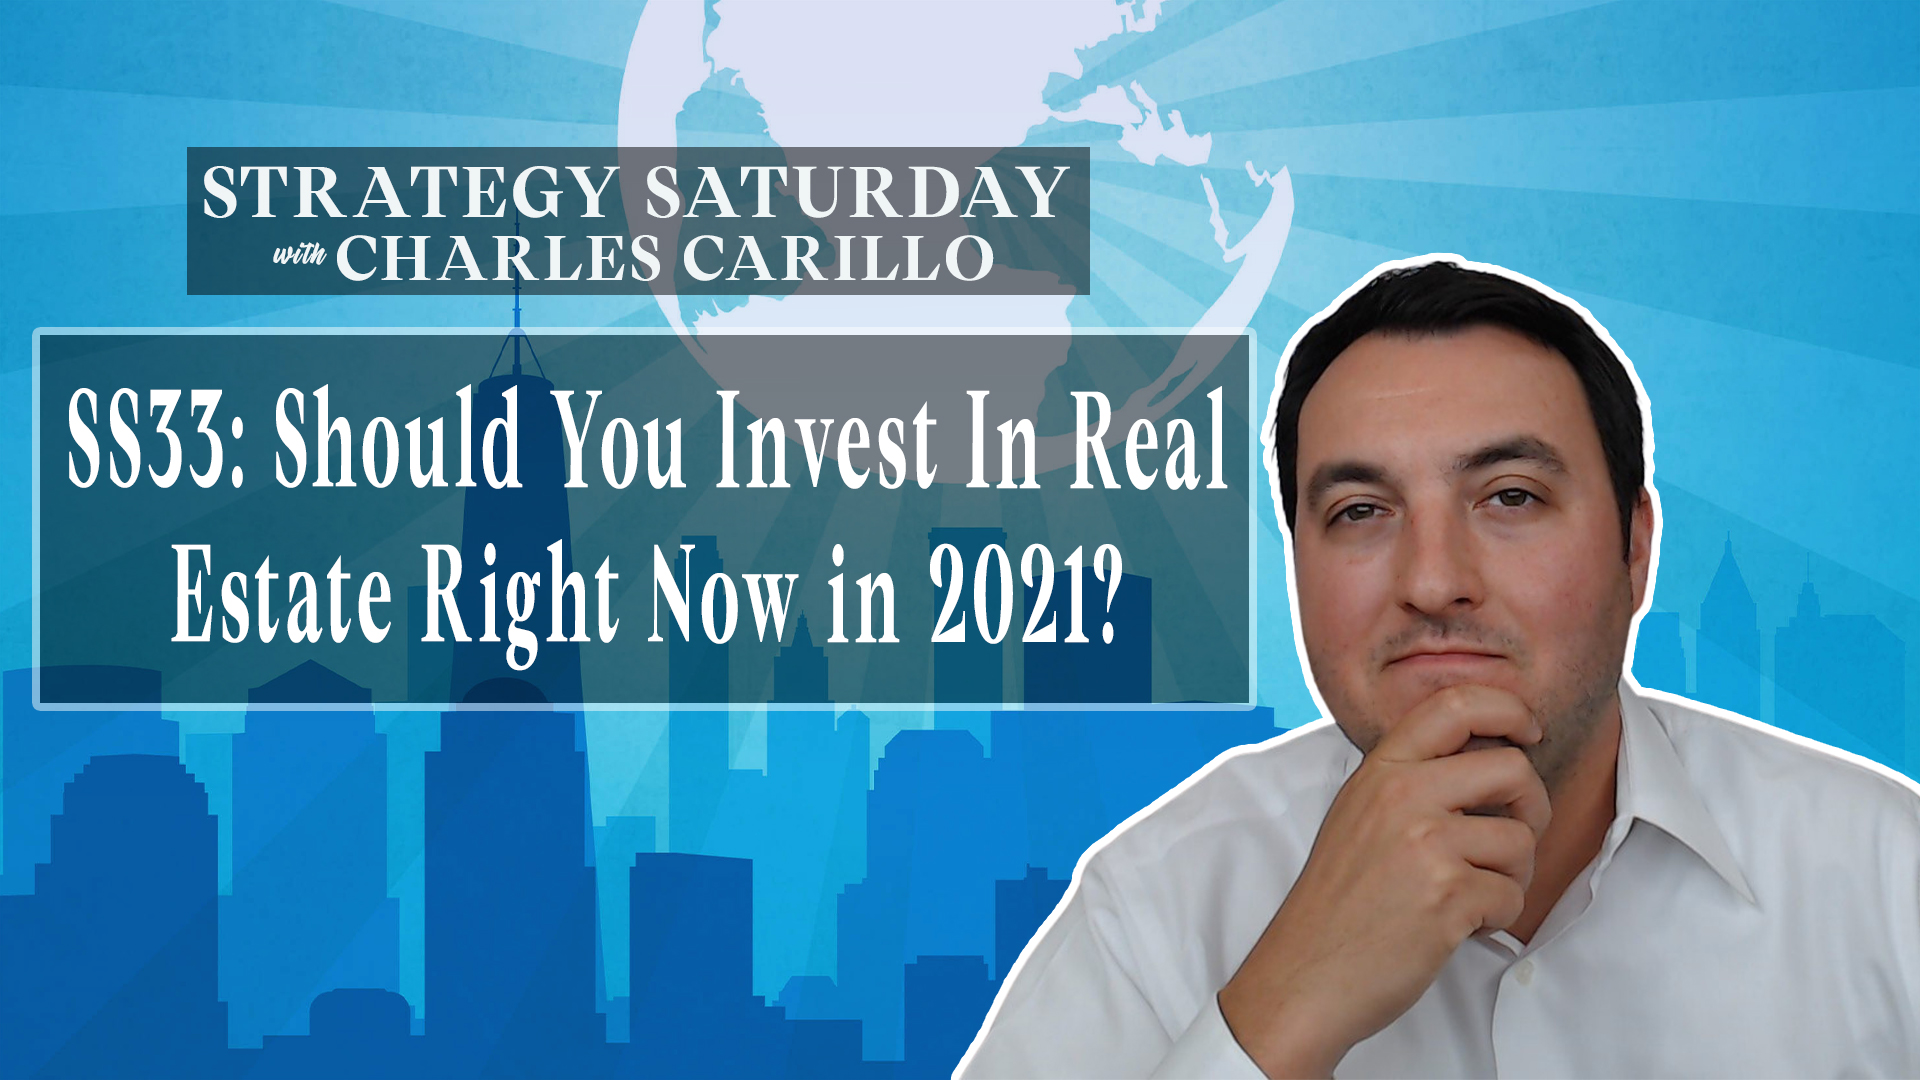 SS33: Should You Invest In Real Estate Right Now in 2021?